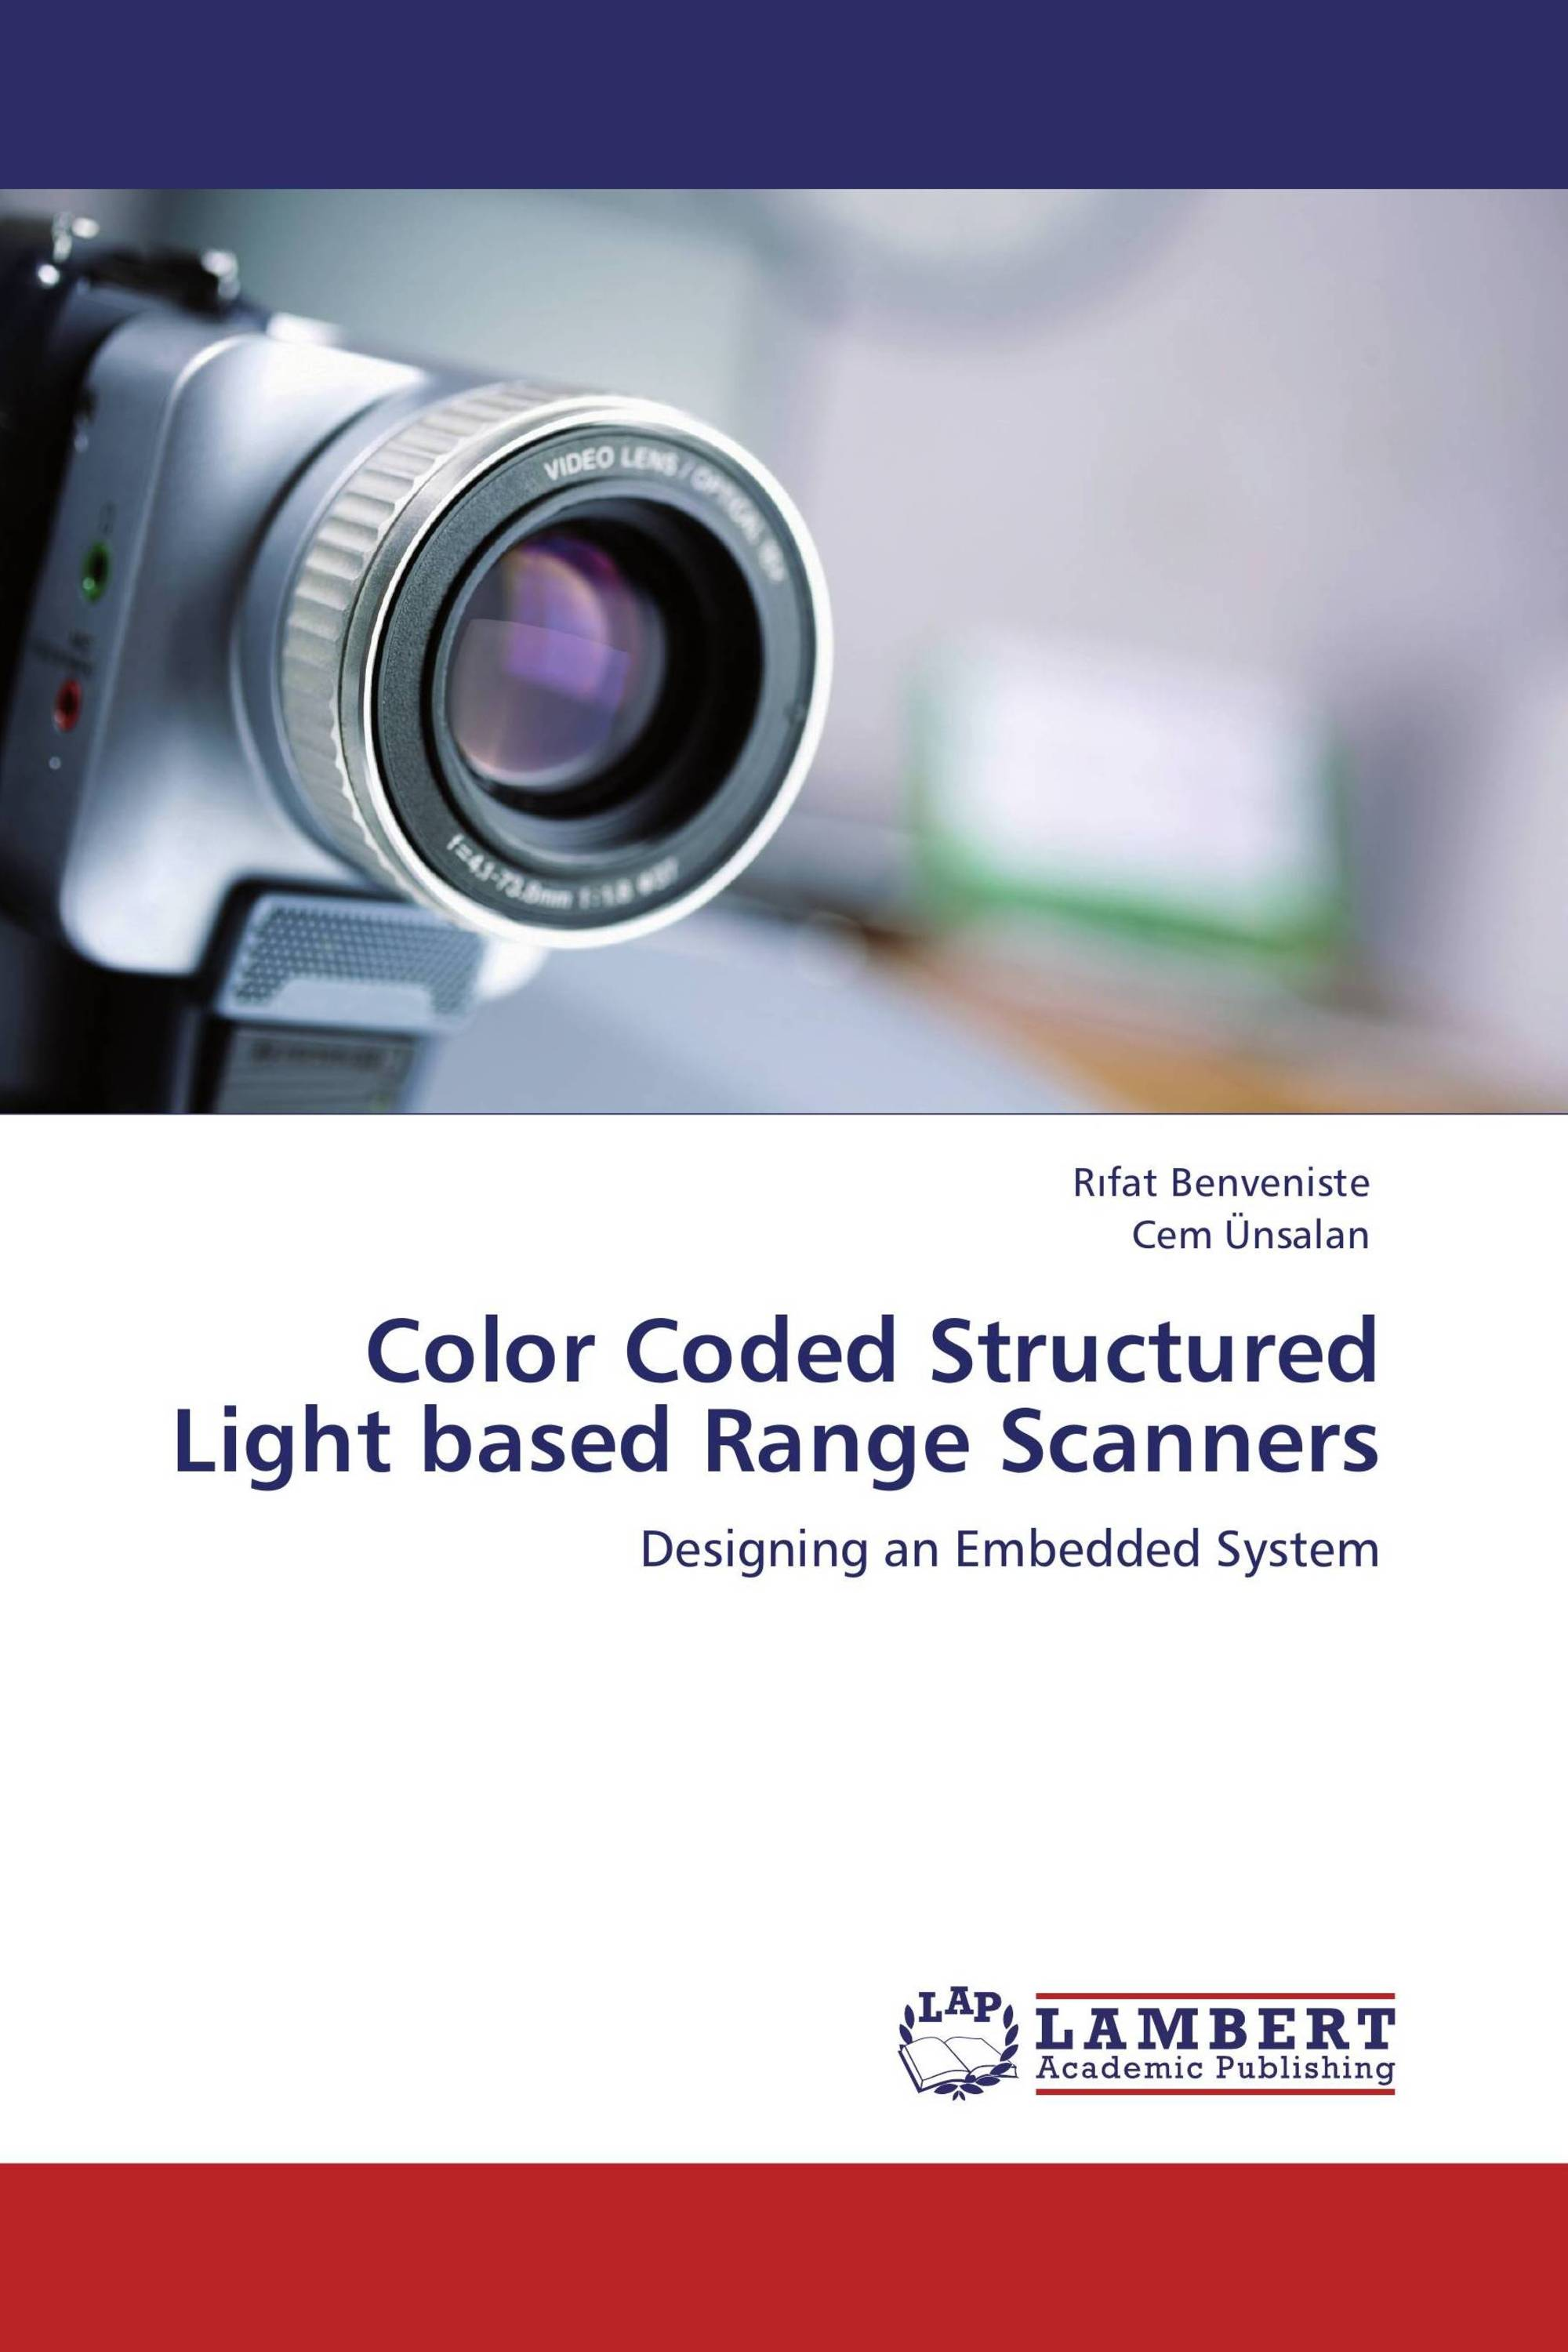 Color Coded Structured Light based Range Scanners